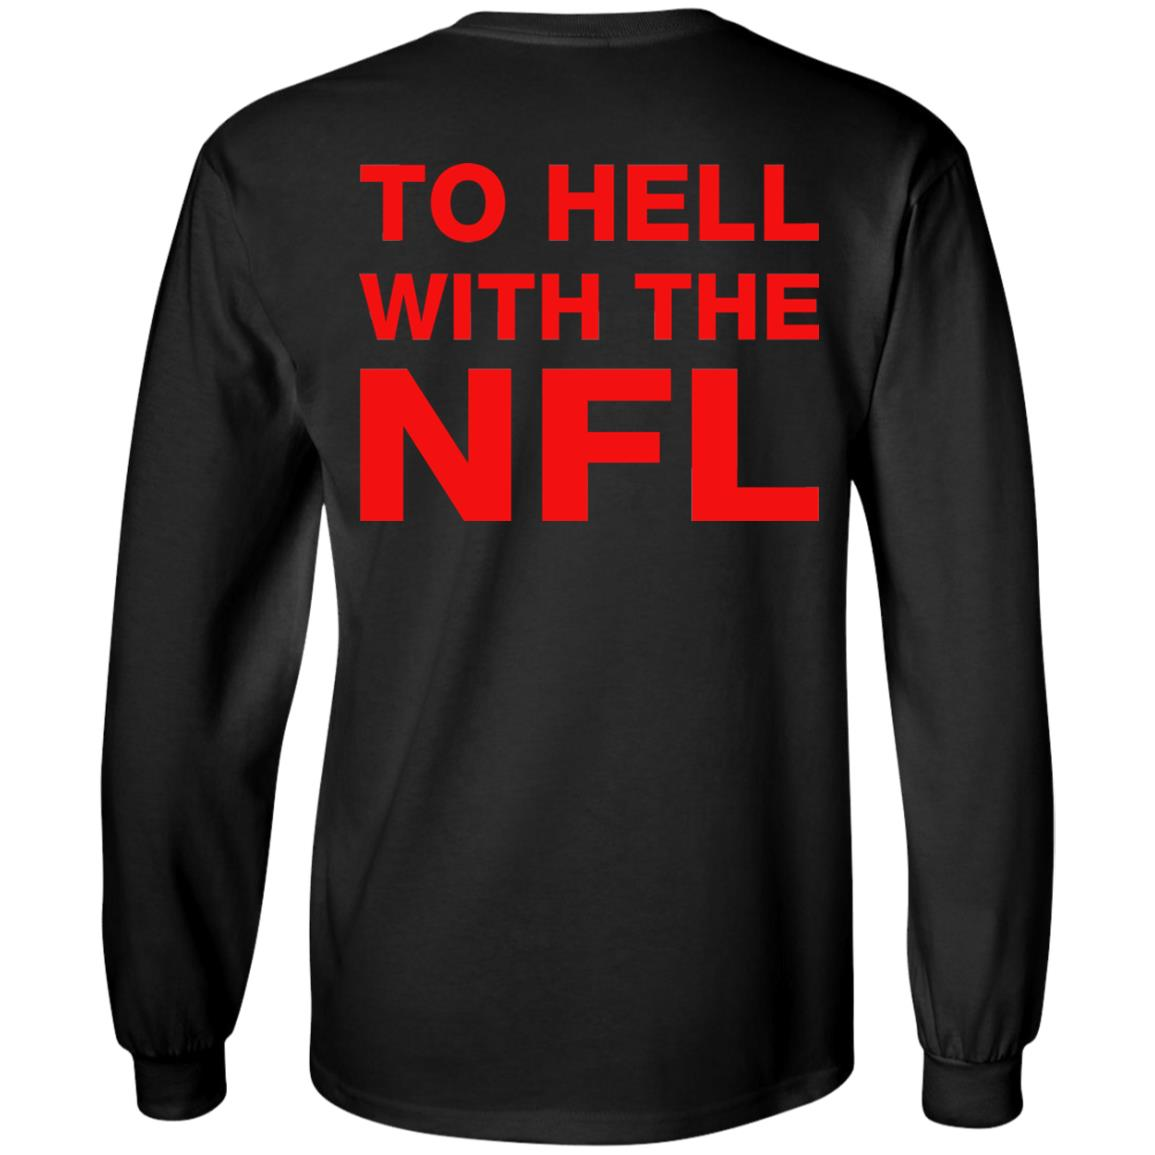 image 327 - To Hell With The NFL Shirt, Sweatshirt, Hoodie